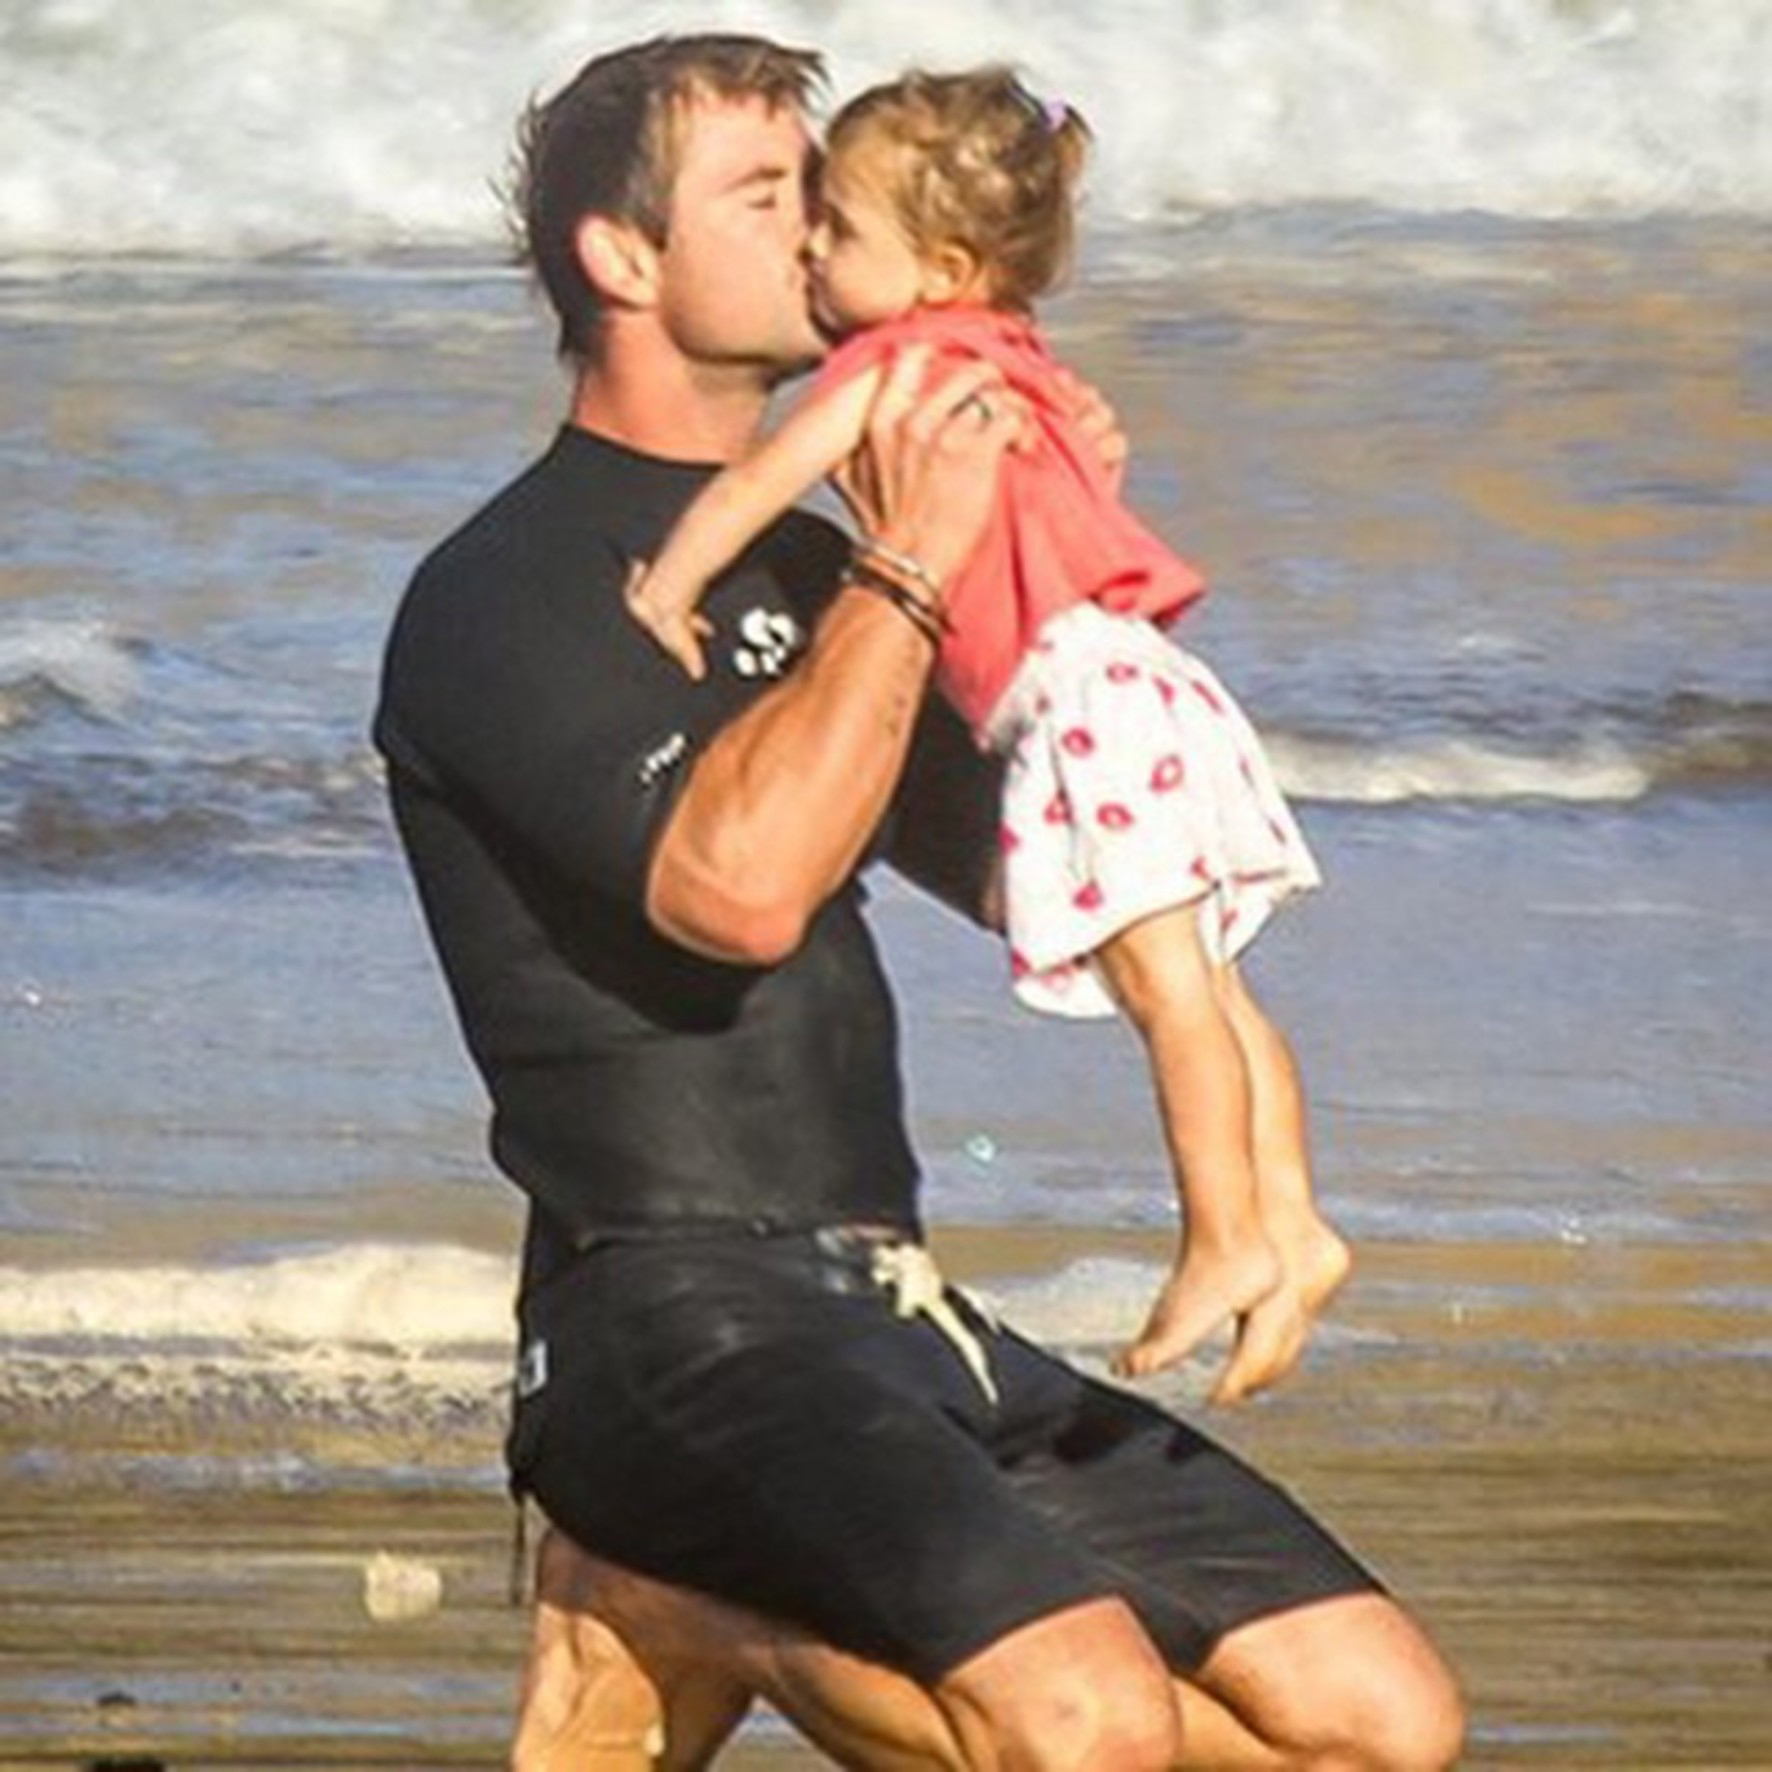 Chris Hemsworth szeme fénye a kis India Rose /Fotó: Northfoto